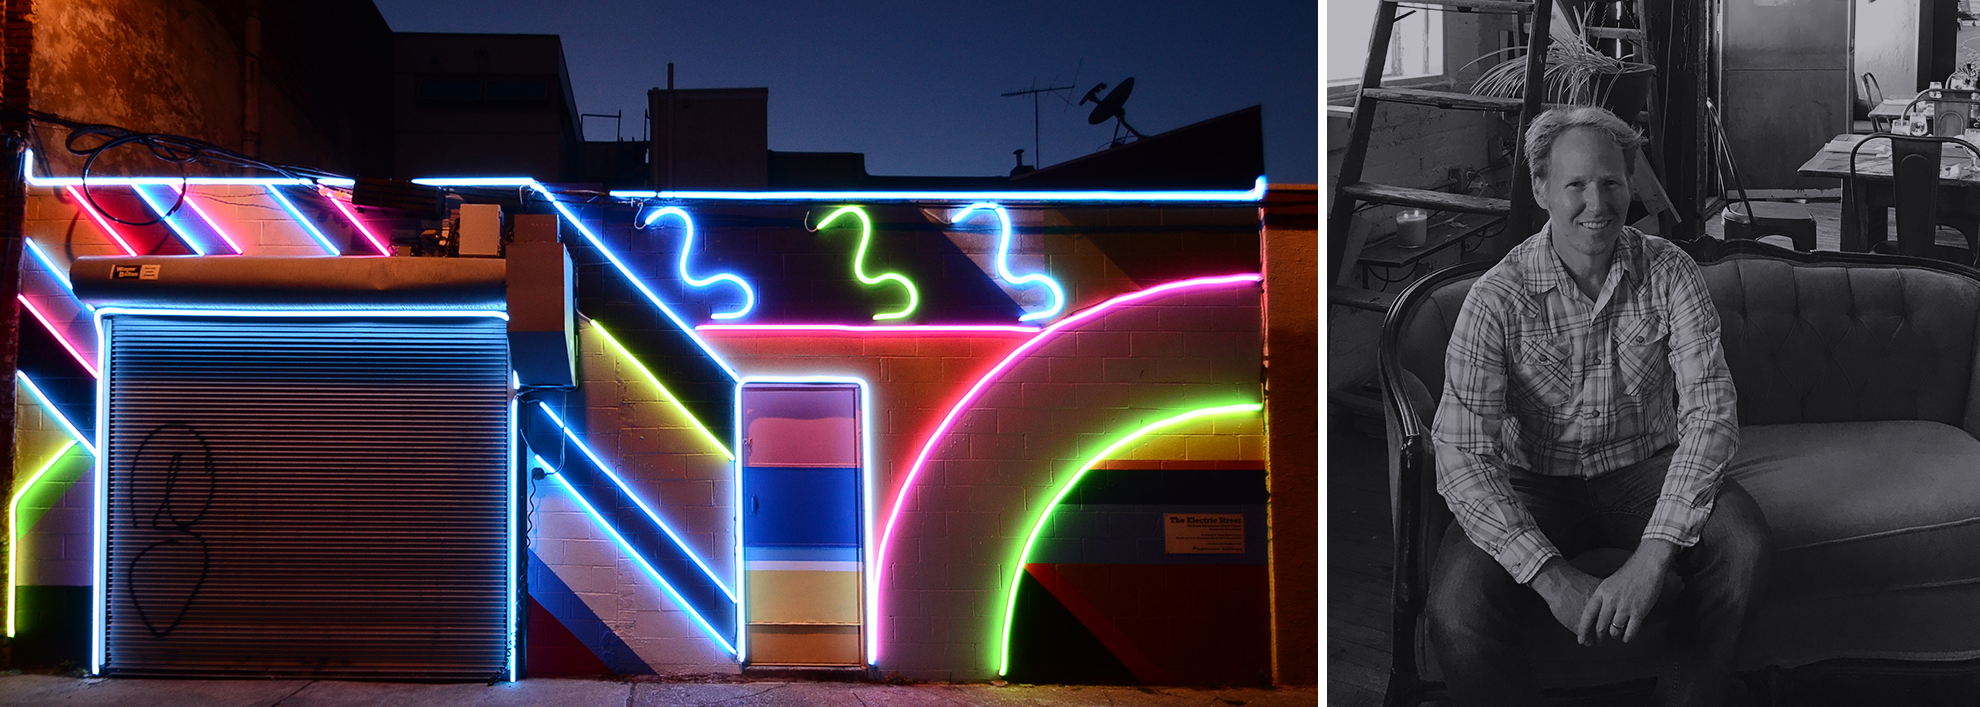 On the left, a neon art sculpture. On the right, David Guinn.